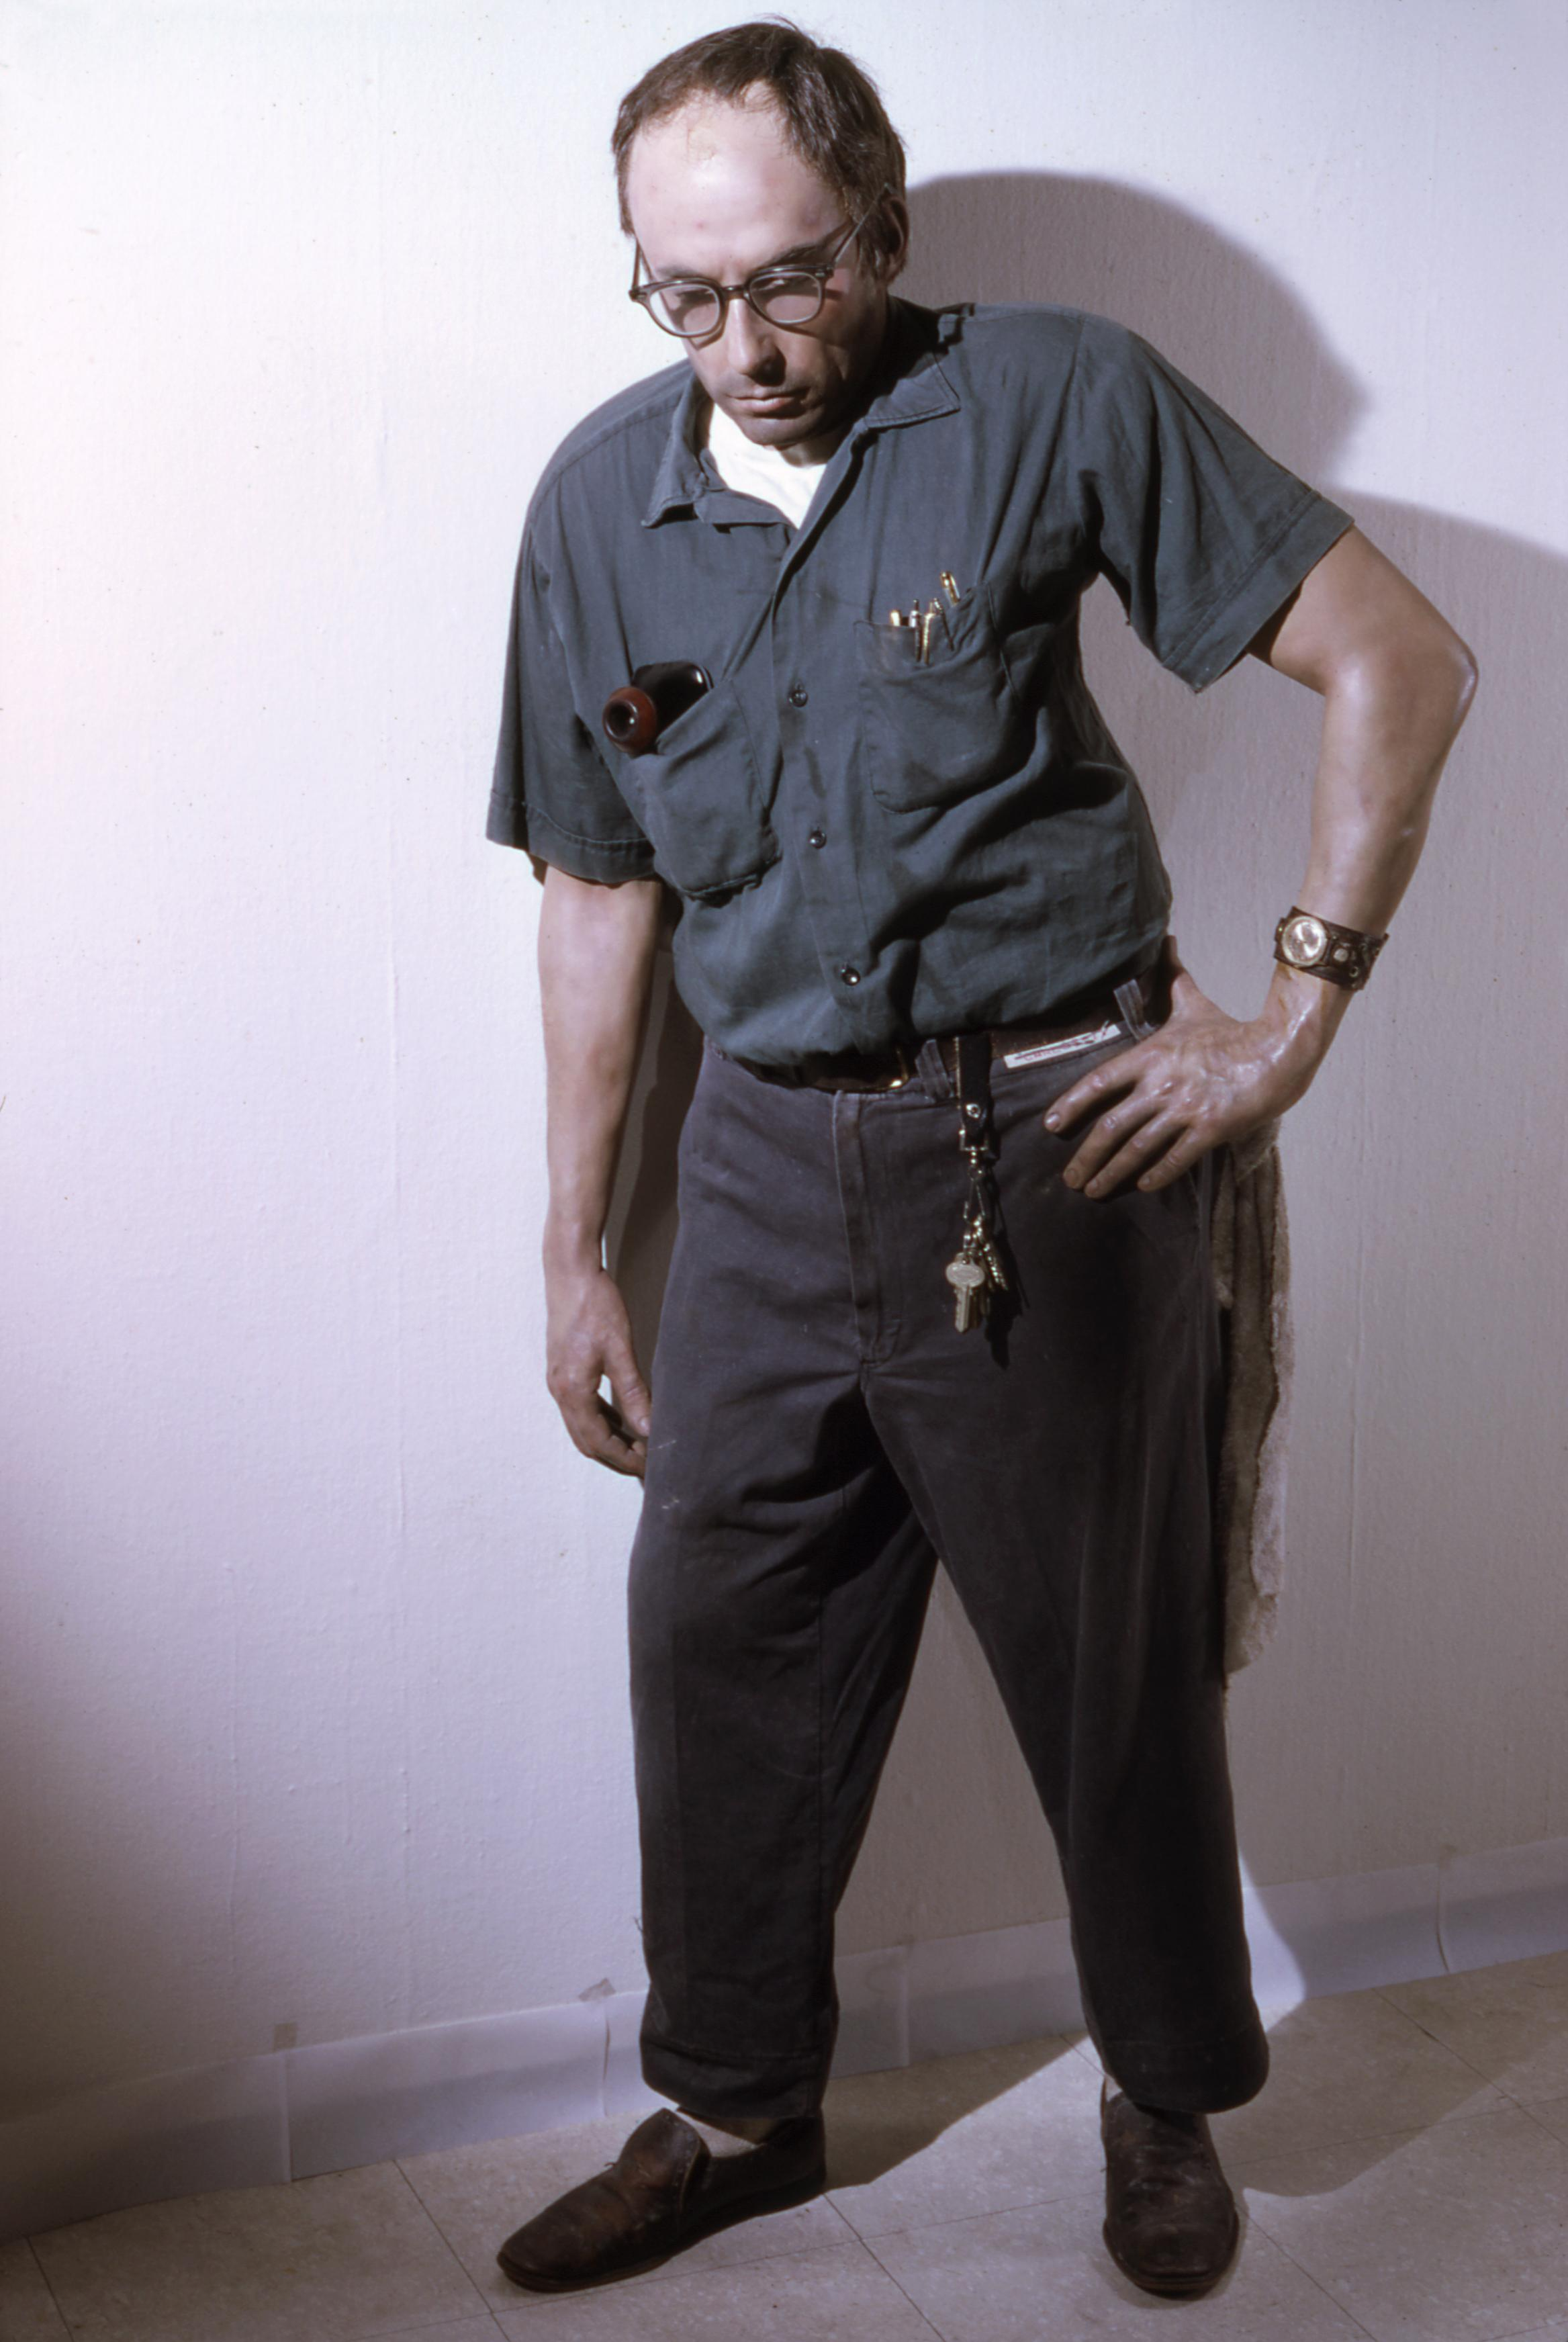 Life-size sculpture of a man dressed as a janitor, who leaning against the wall with his left hand on his hip. He has tools and pens in his shirt pockets, and keys attached to his belt loop.